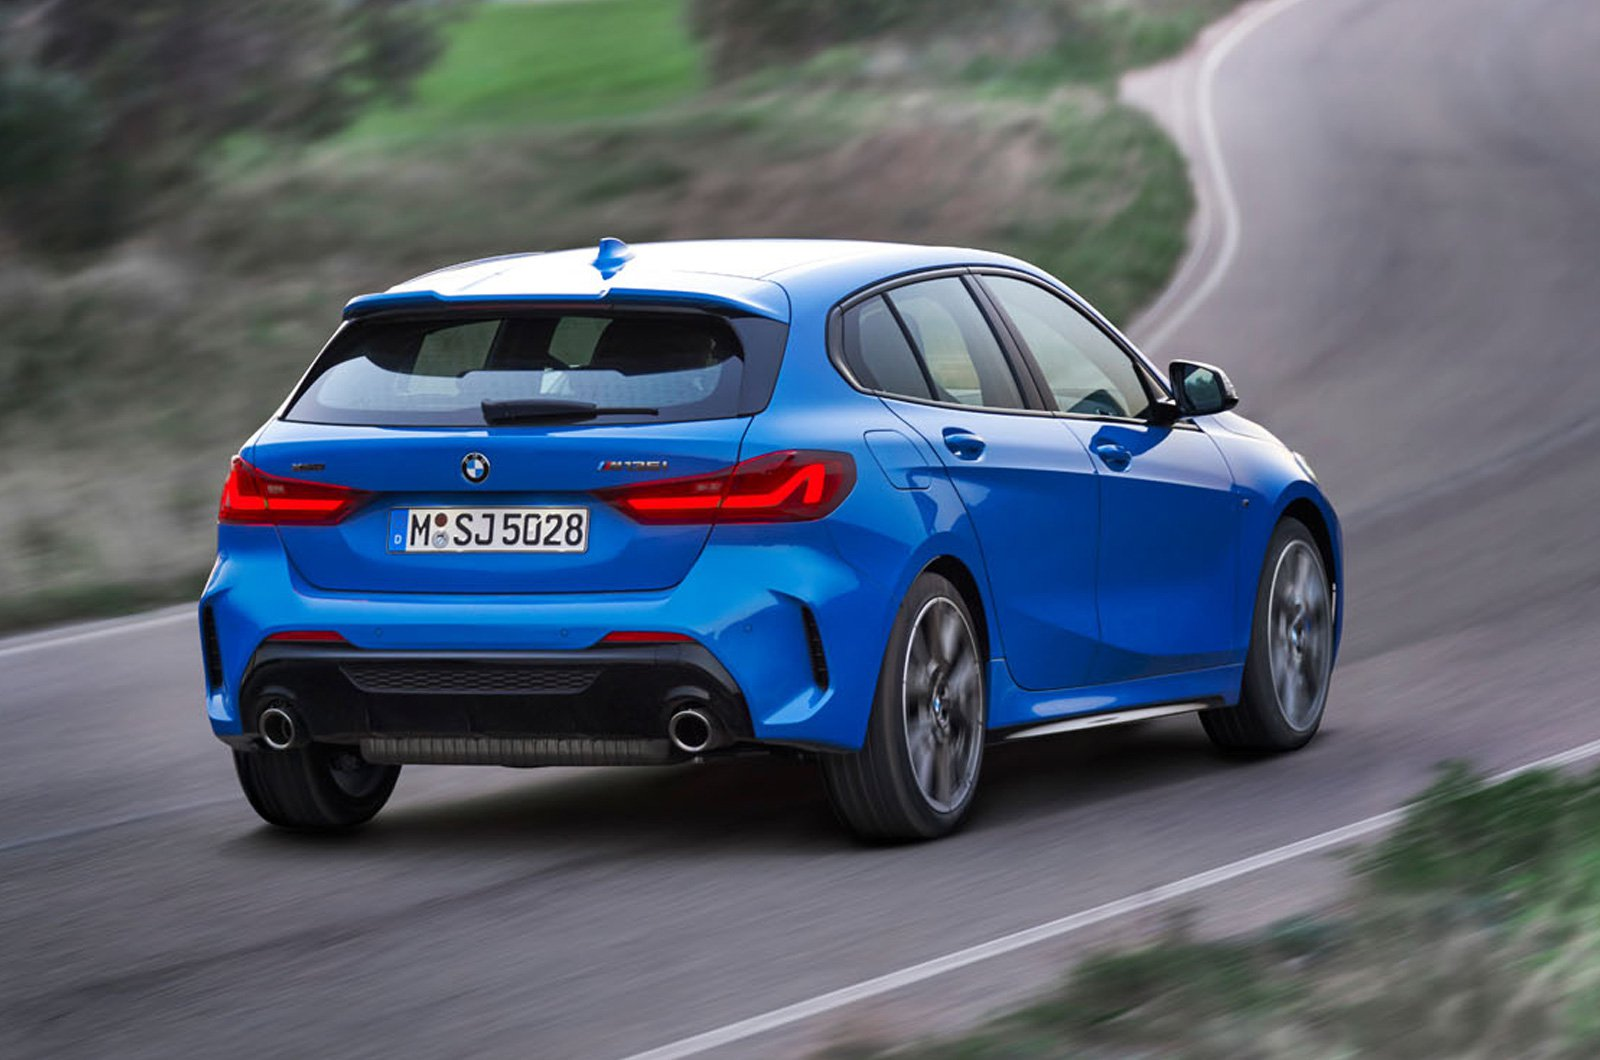 2020 BMW 1 Series rear